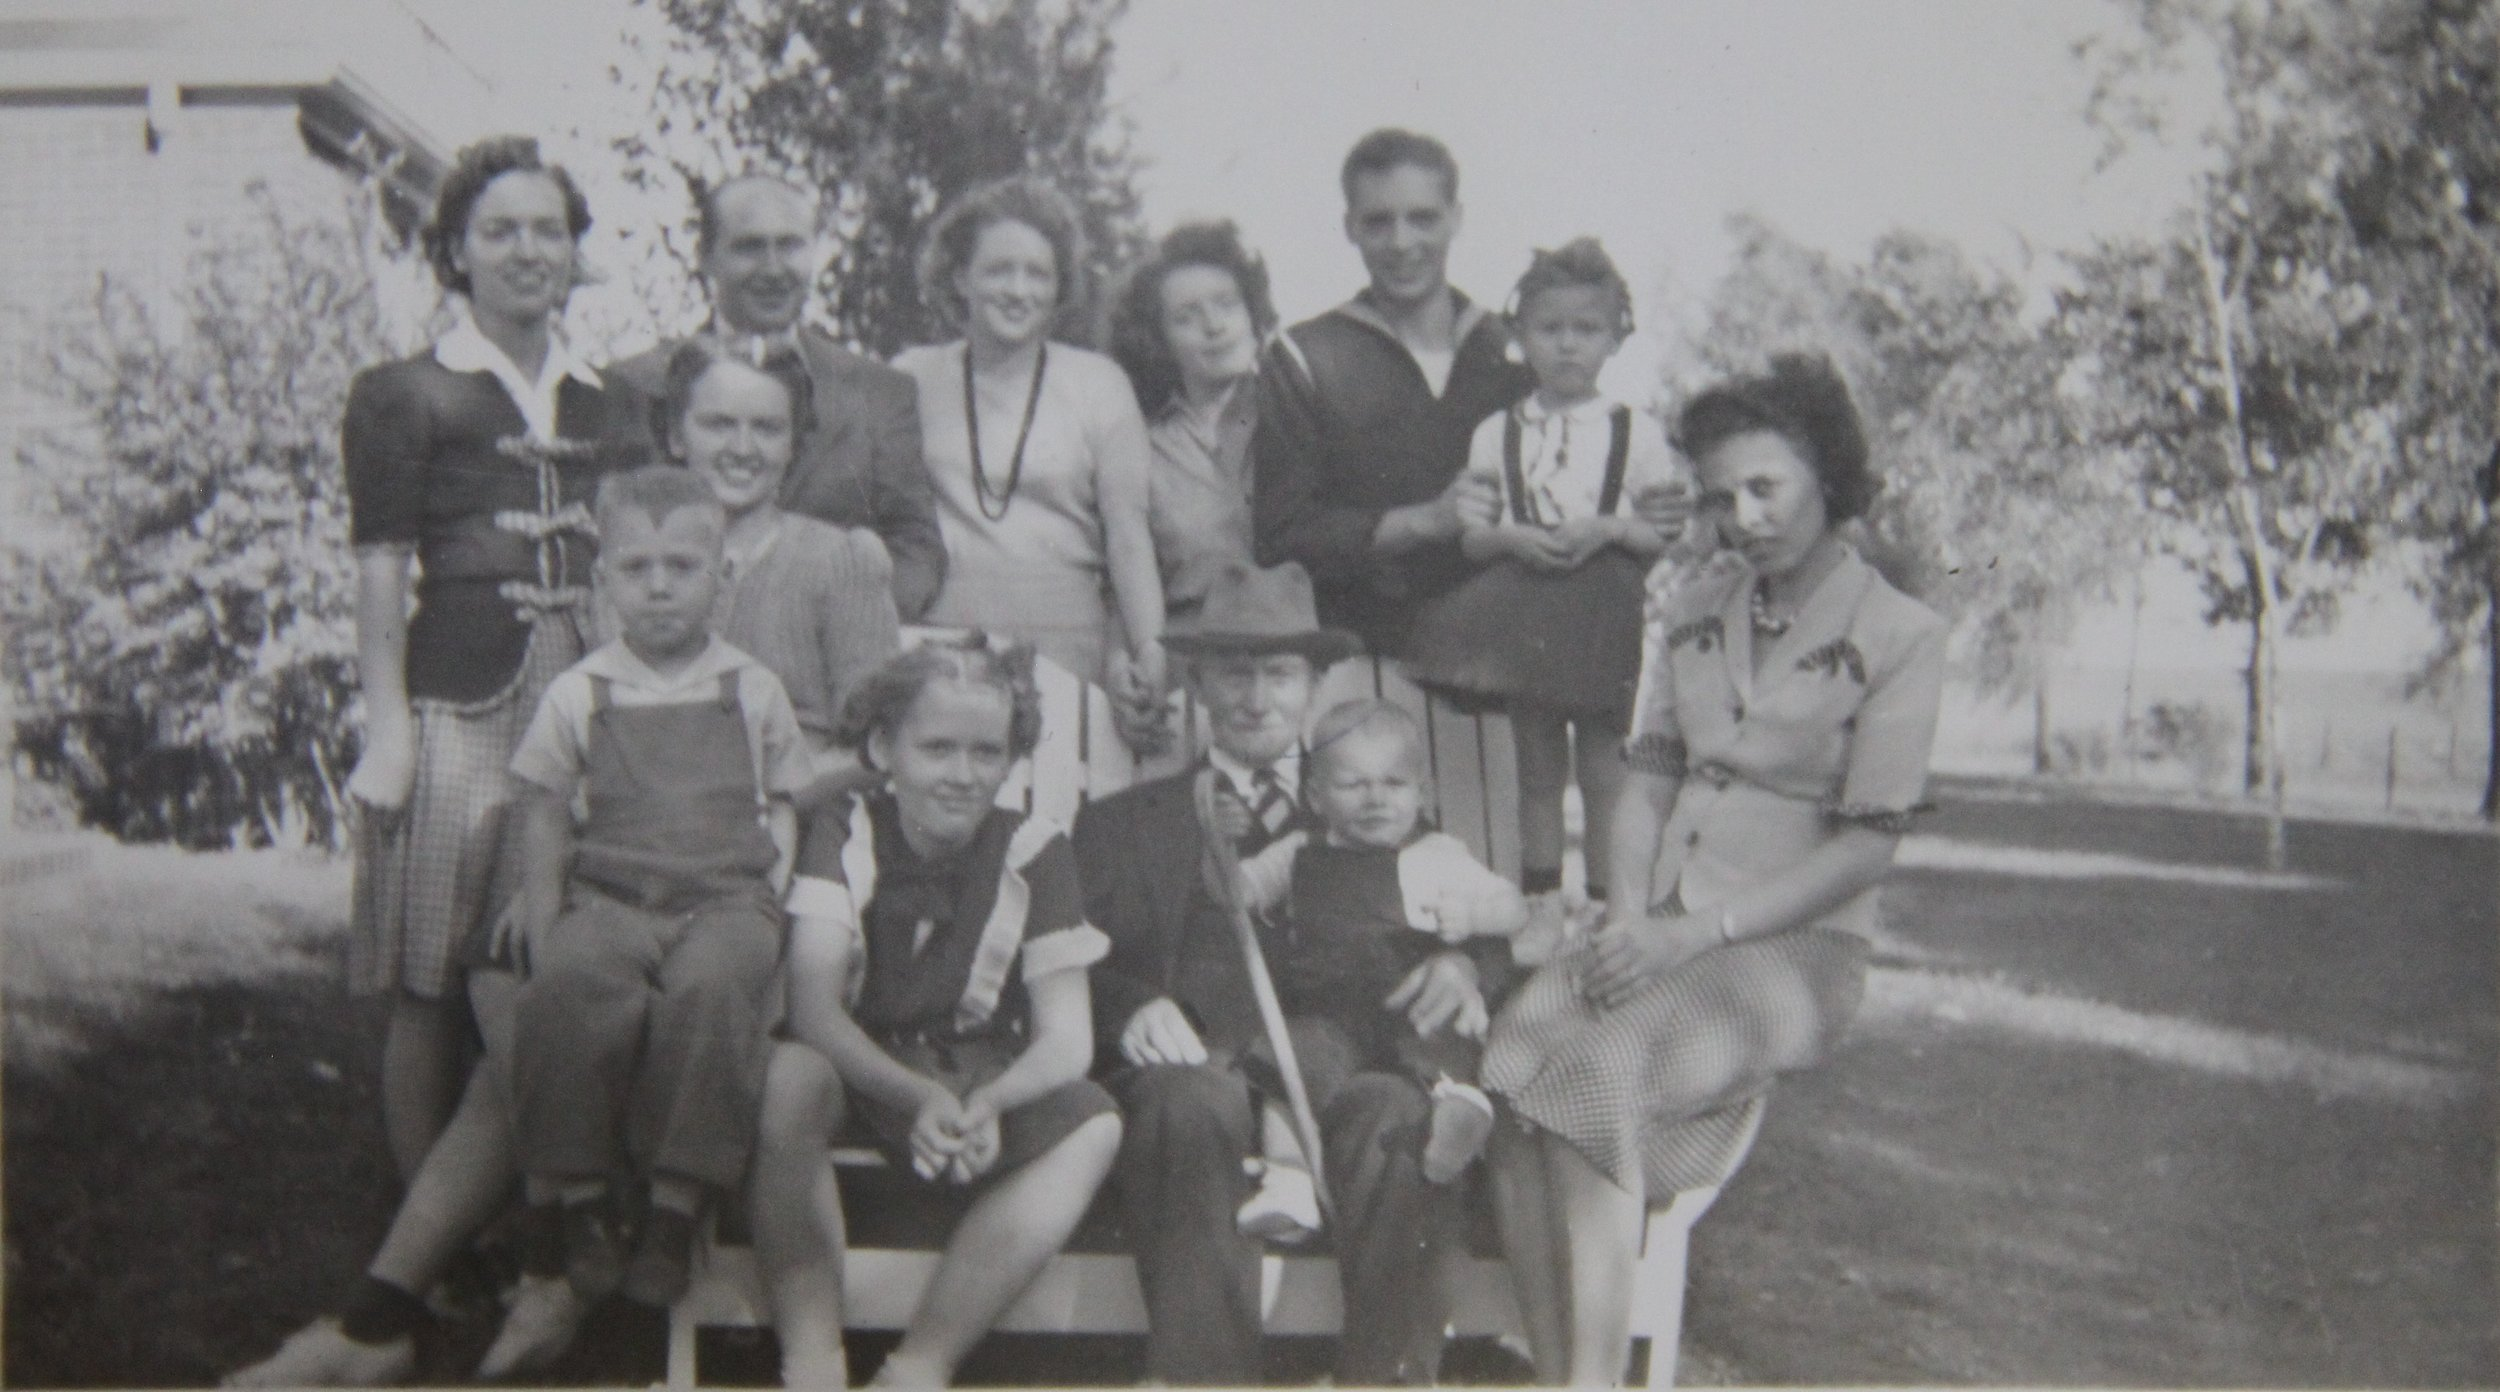 Not my actual family, but it looks like my grandparents' backyard in the Midwest.